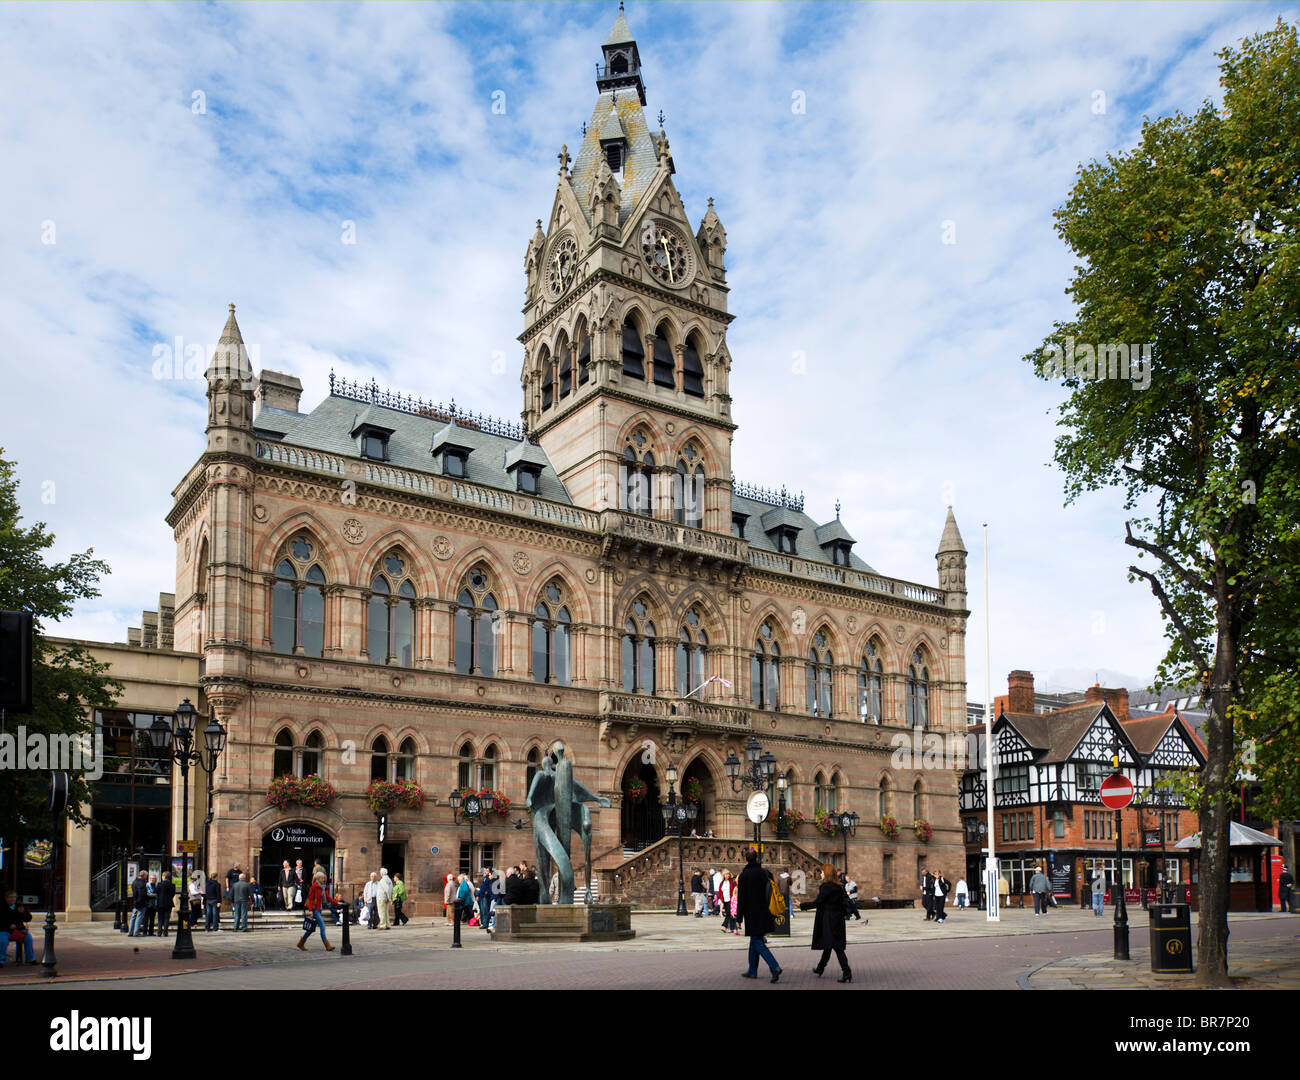 The Town Hall, Chester, Cheshire, England, UK - Stock Image